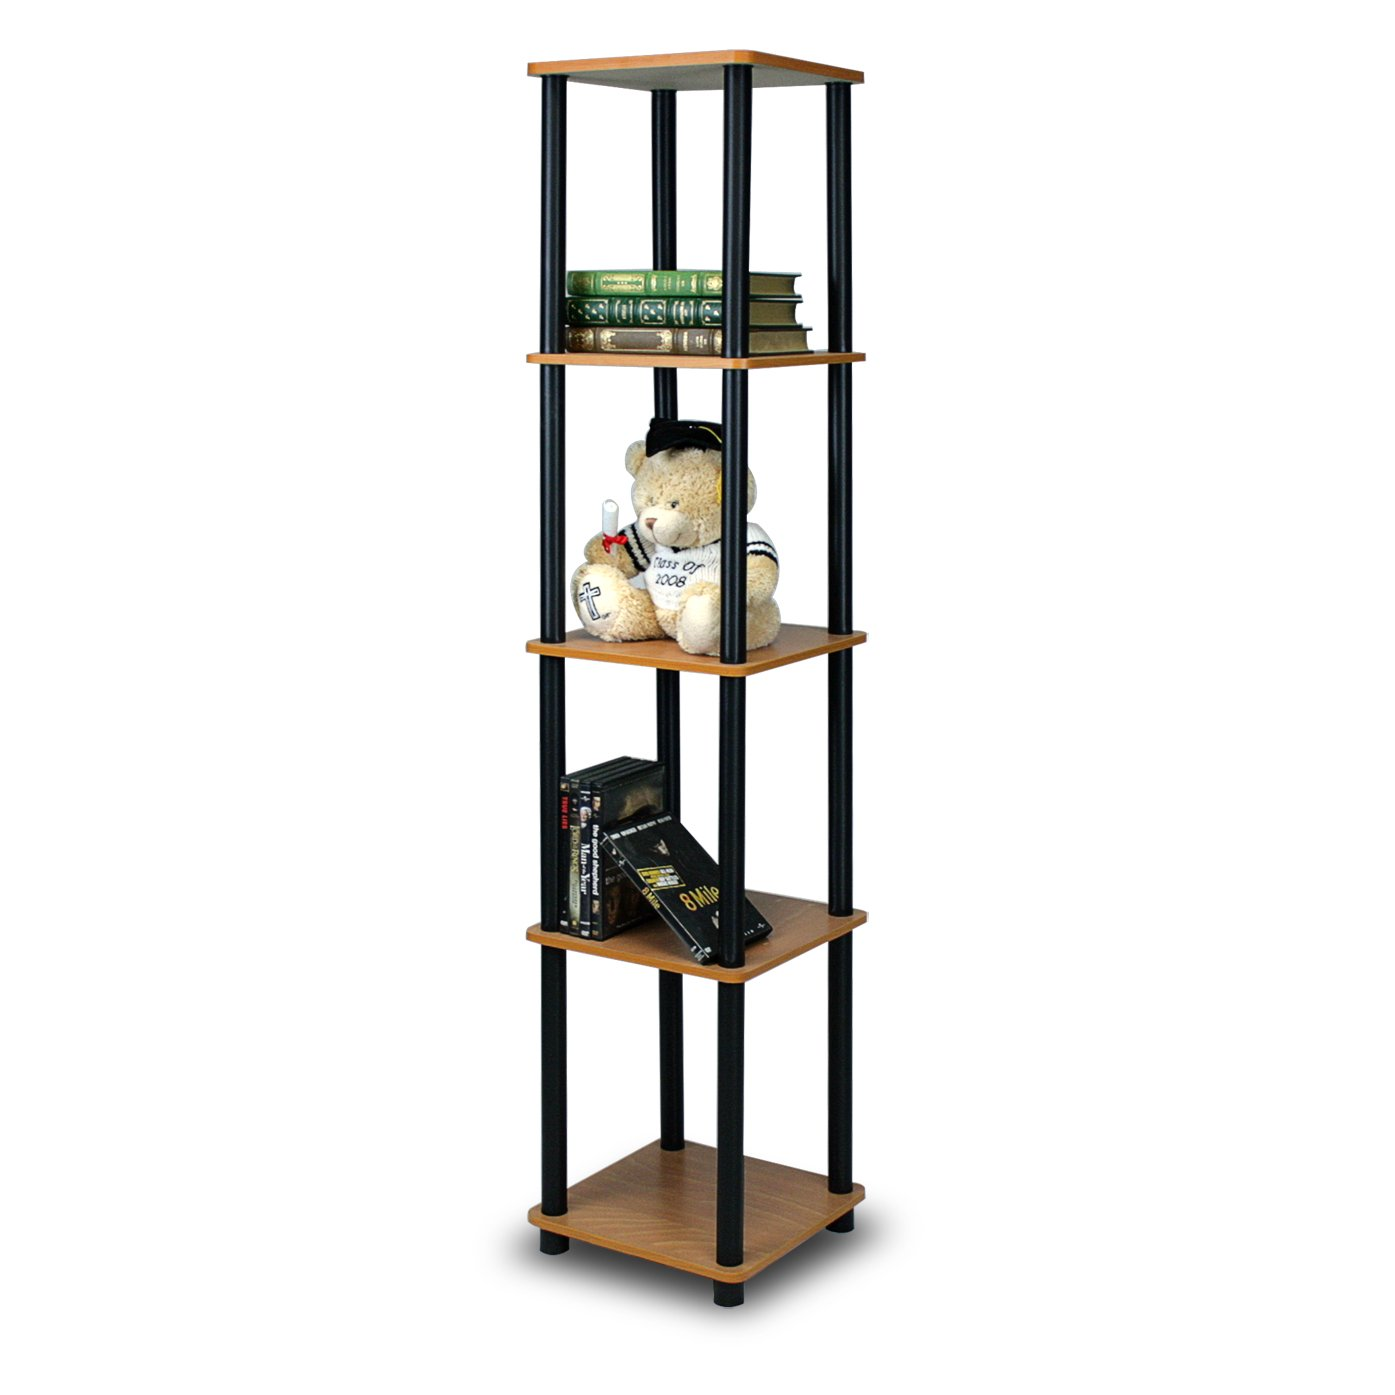 espresso shelf tall bookshelves corner small bookshelf modern ikea unit oak